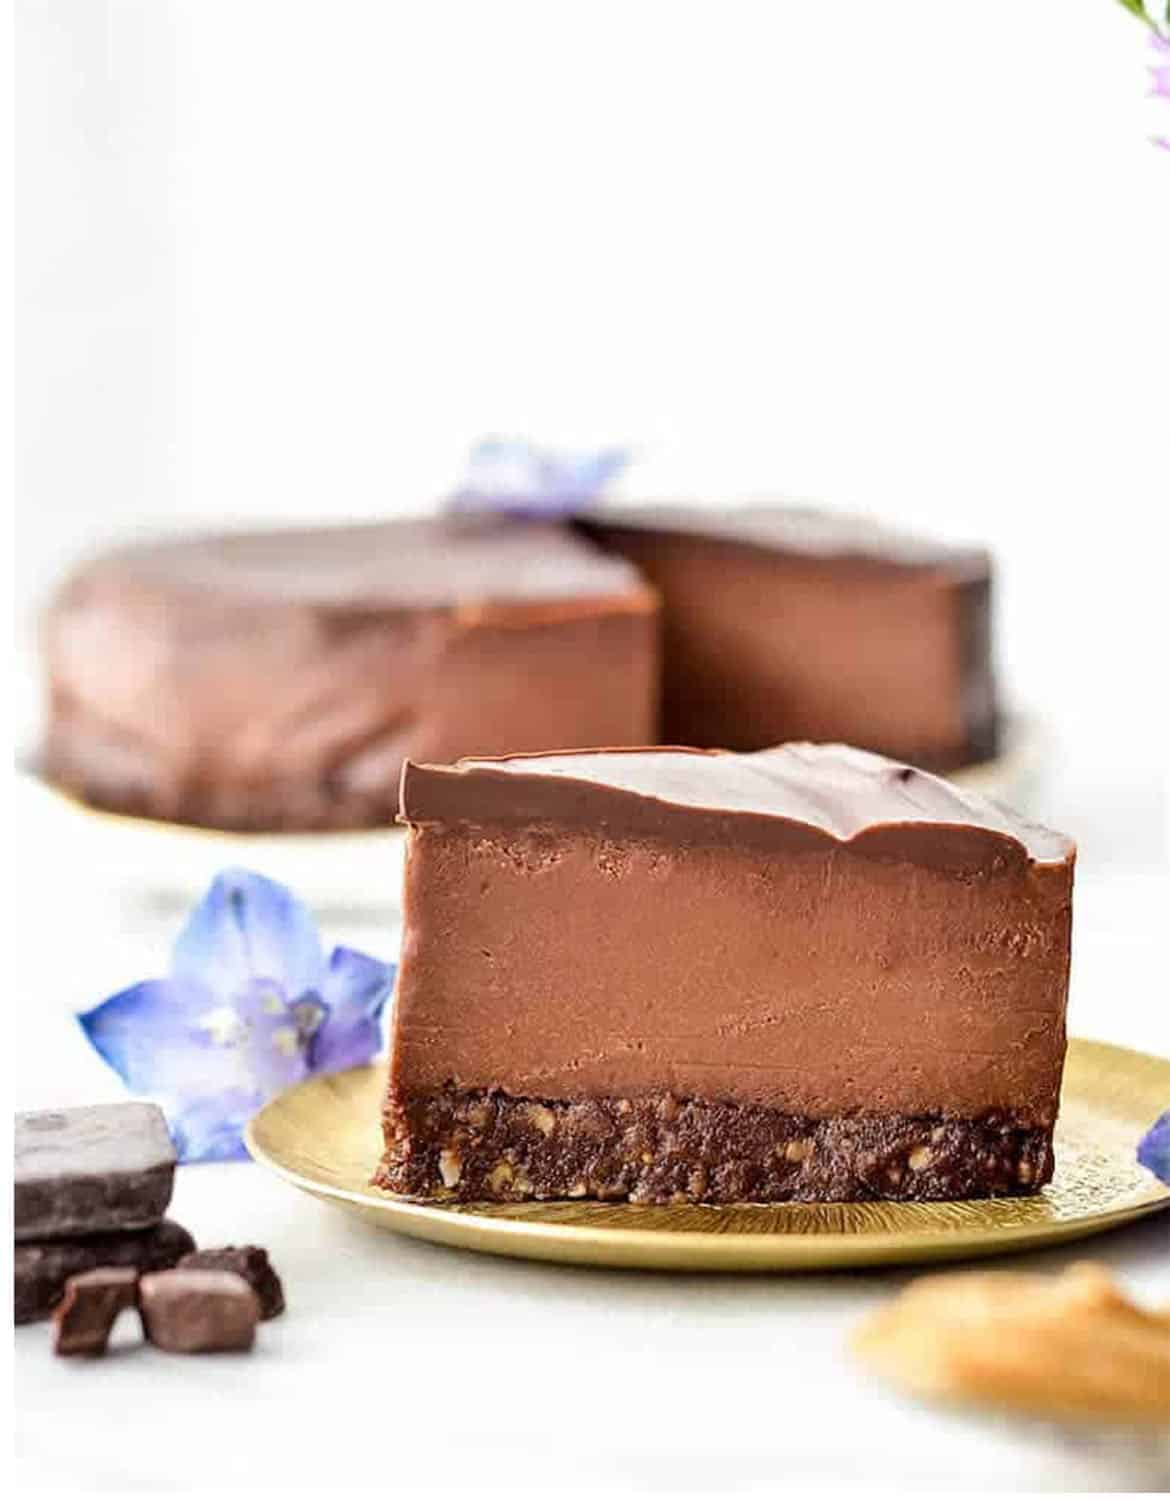 A big slice of a vegan chocolate peanut butter cheesecake, purple flowers and the whole cake in the background - Joy Food Sunshine: